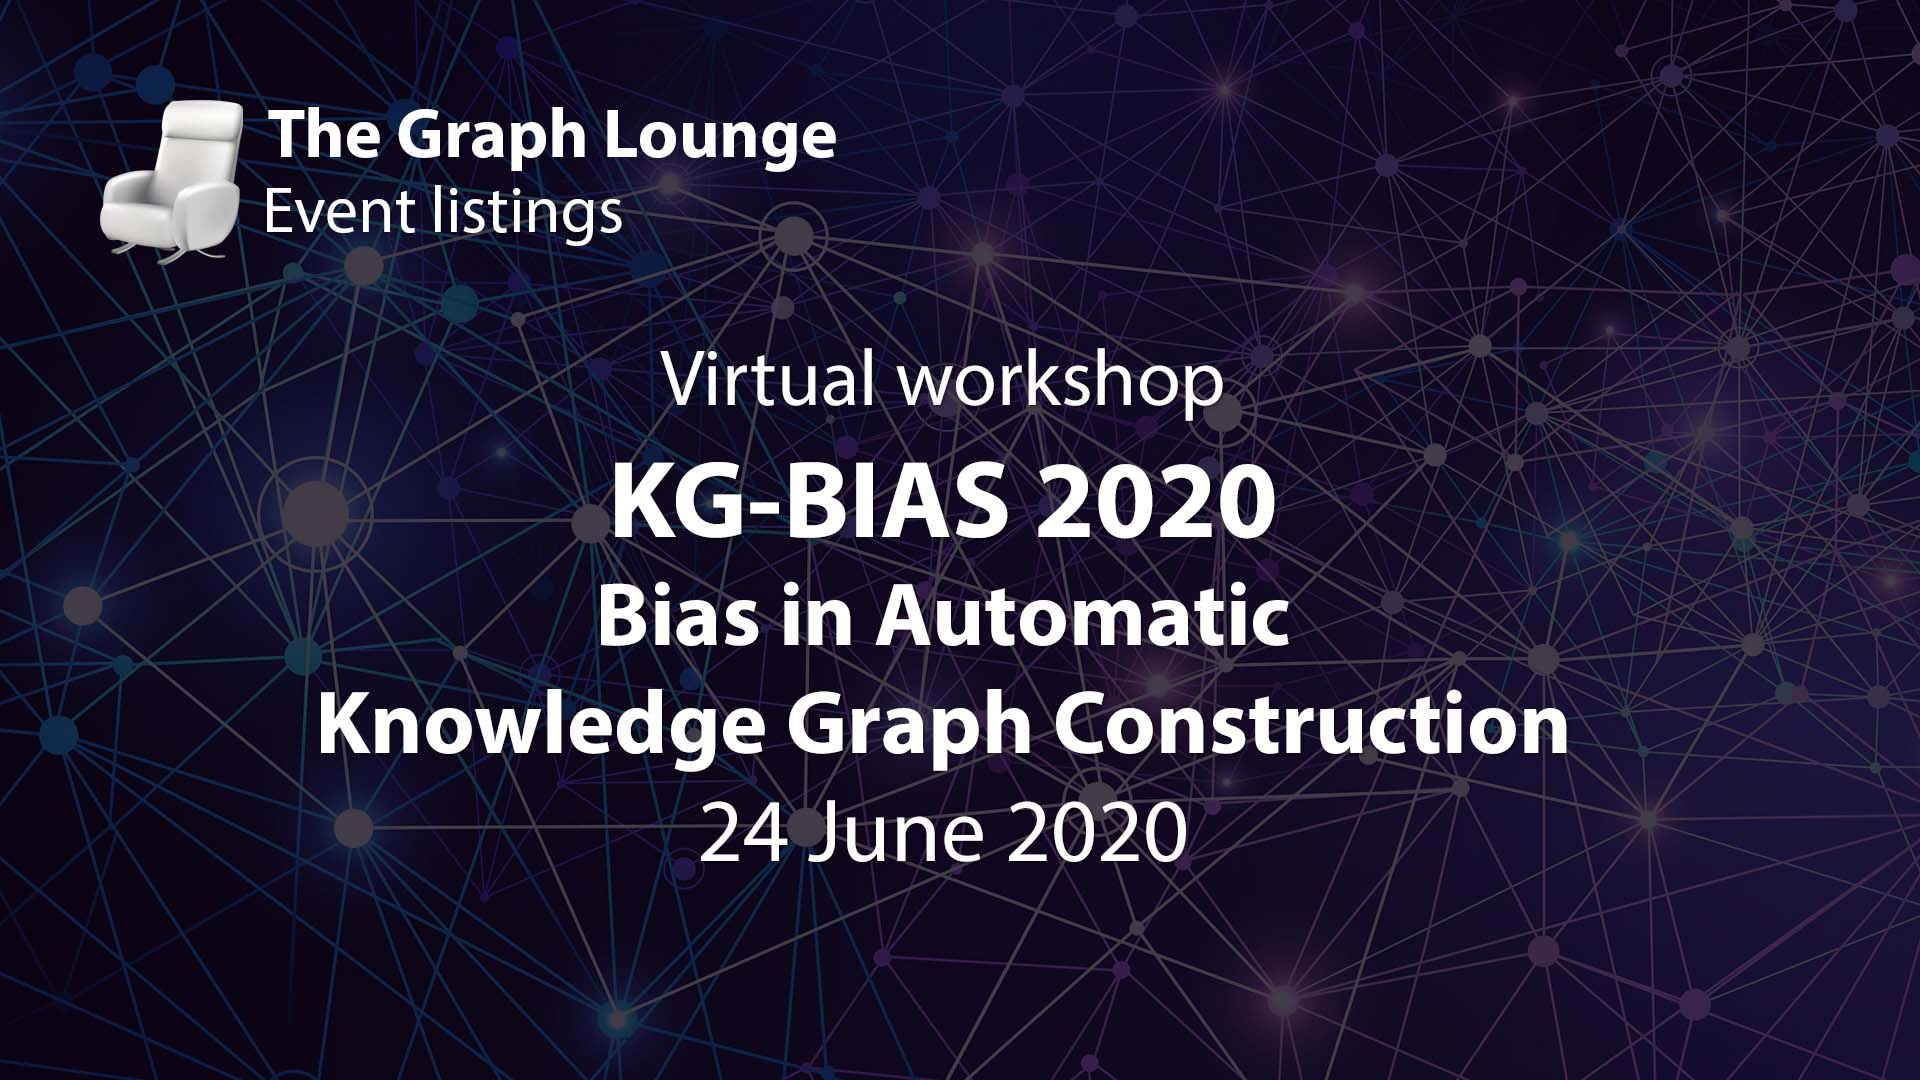 KG-BIAS 2020 (Bias in Automatic Knowledge Graph Construction)